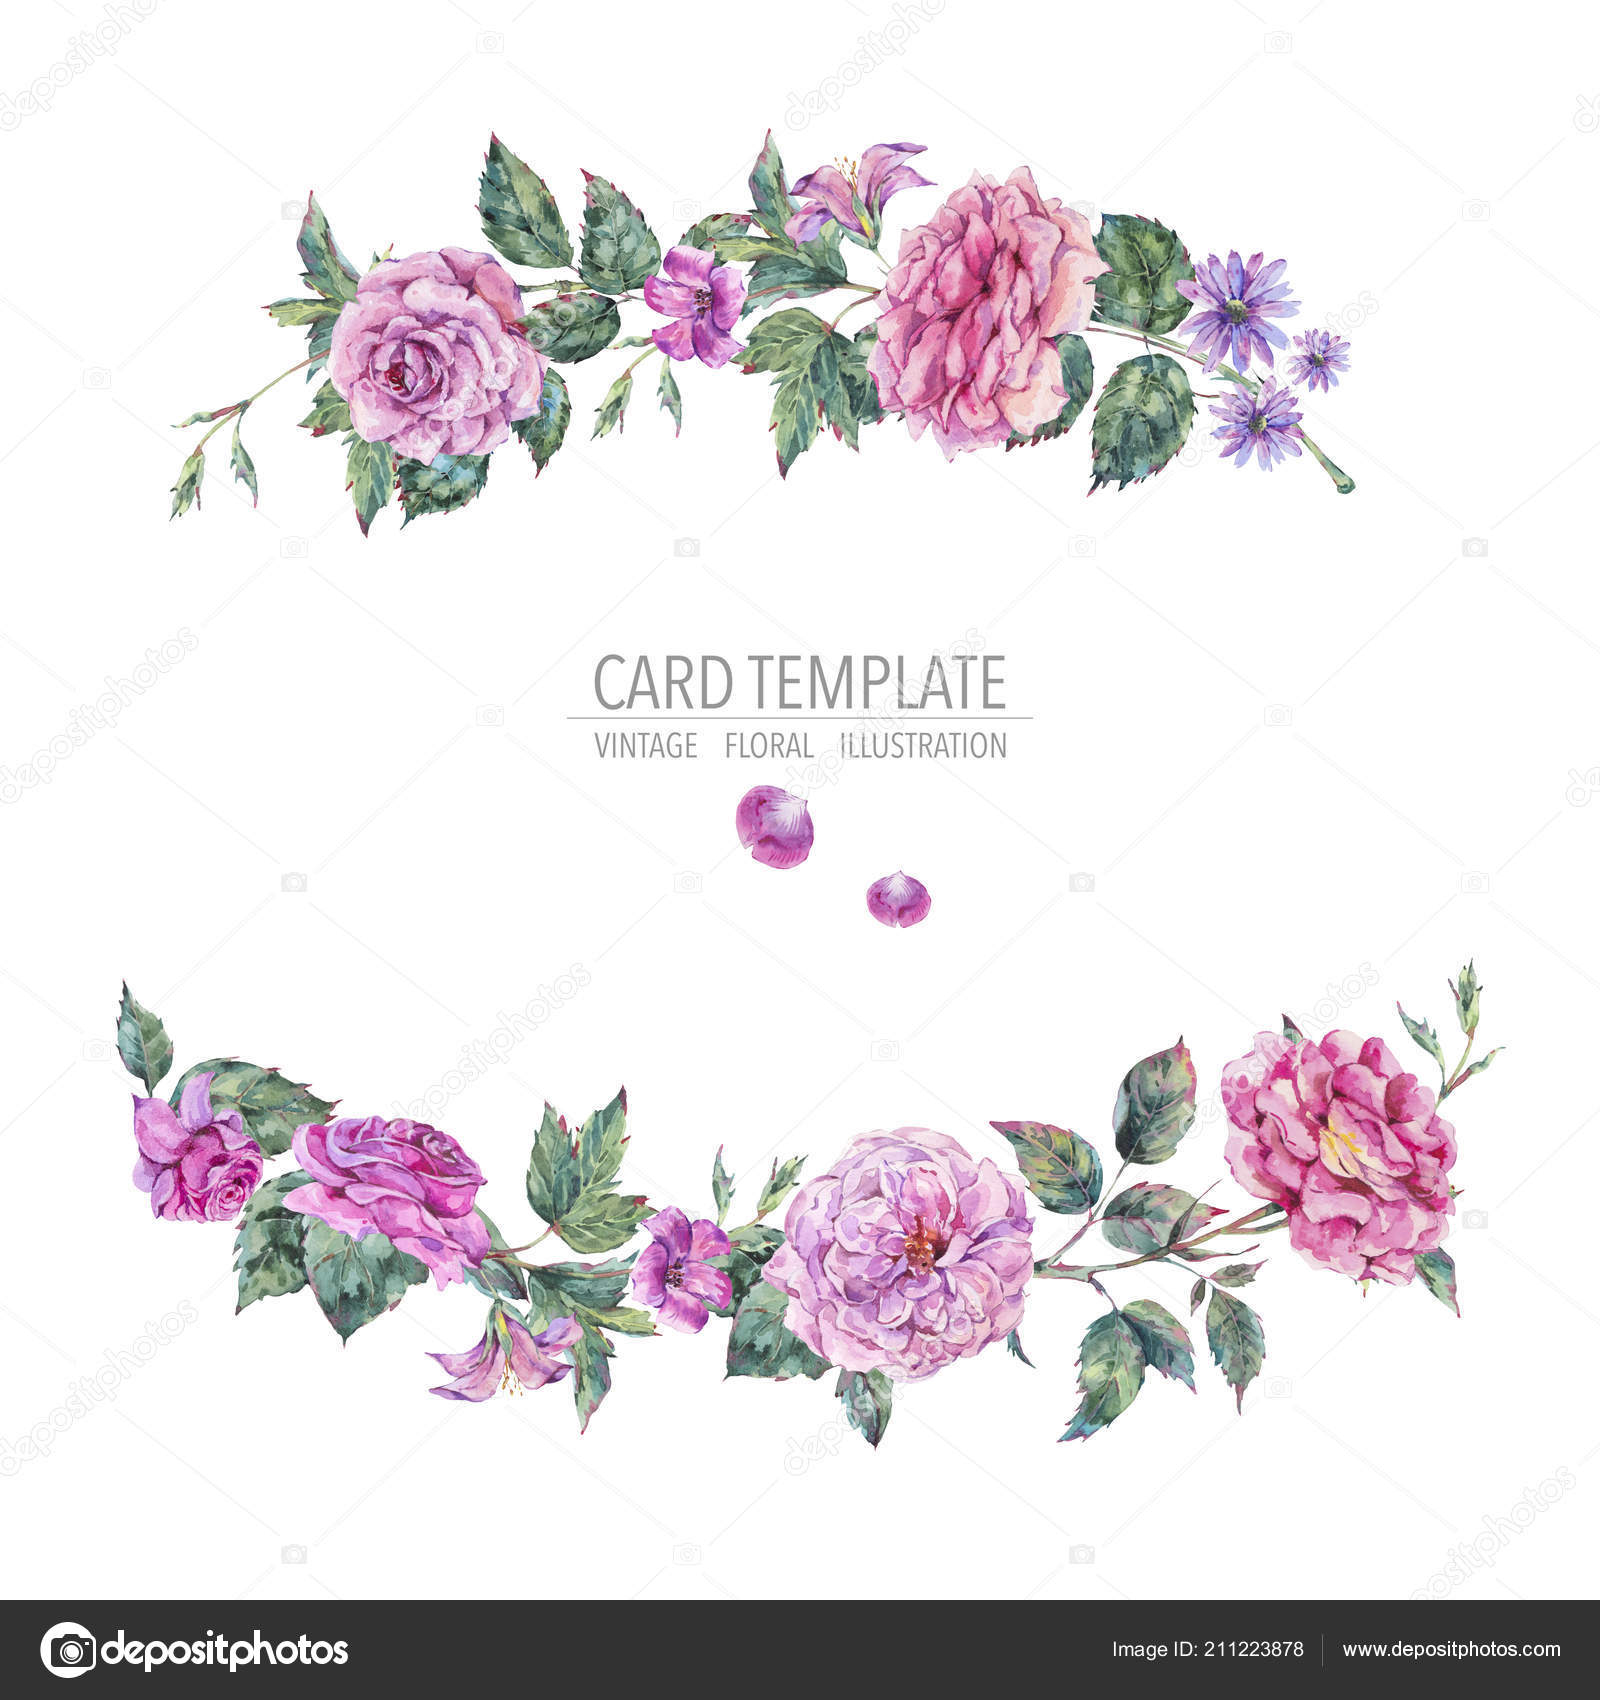 Decorative Vintage Watercolor Pink Roses Wreath Botanical Colorful